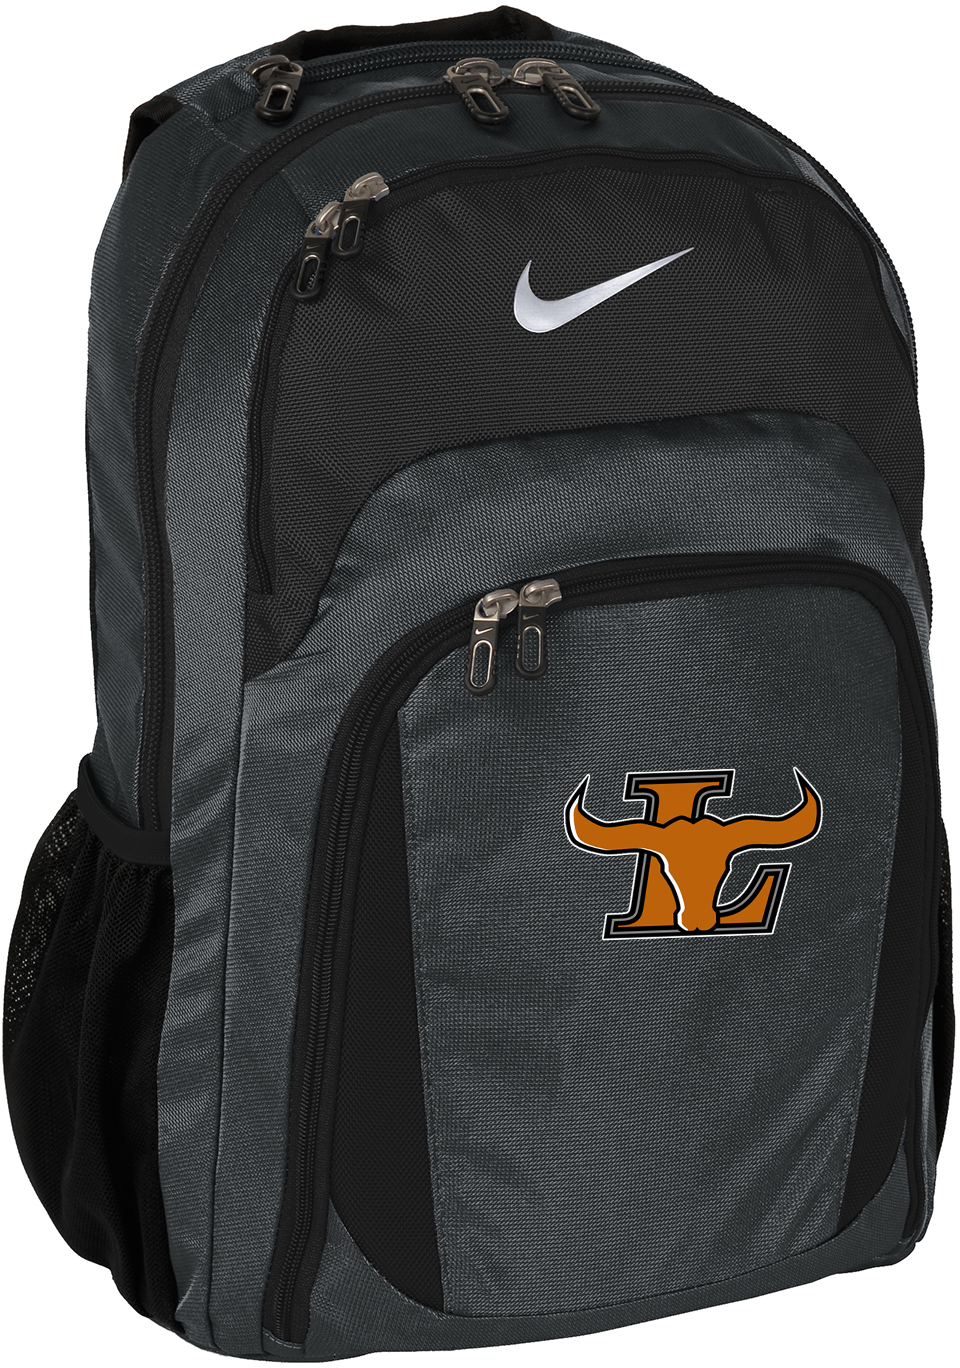 Lanier Baseball Nike Backpack